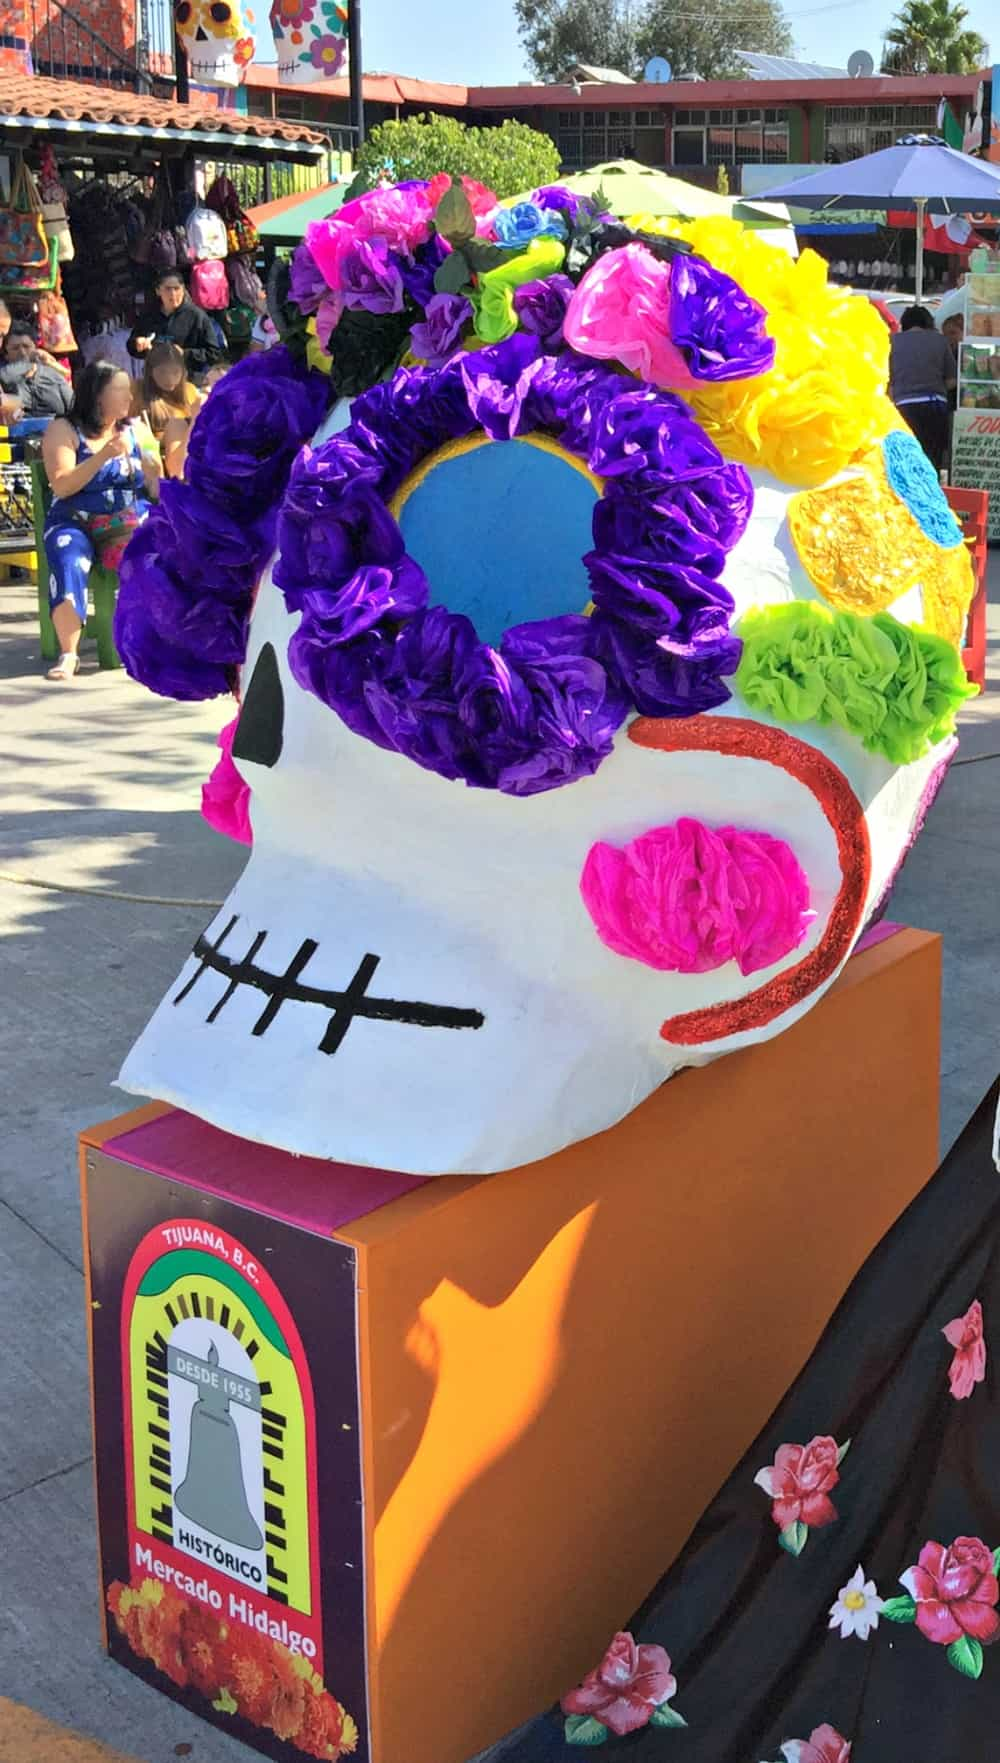 A large statue of a skull ornately and colorfully decorated.